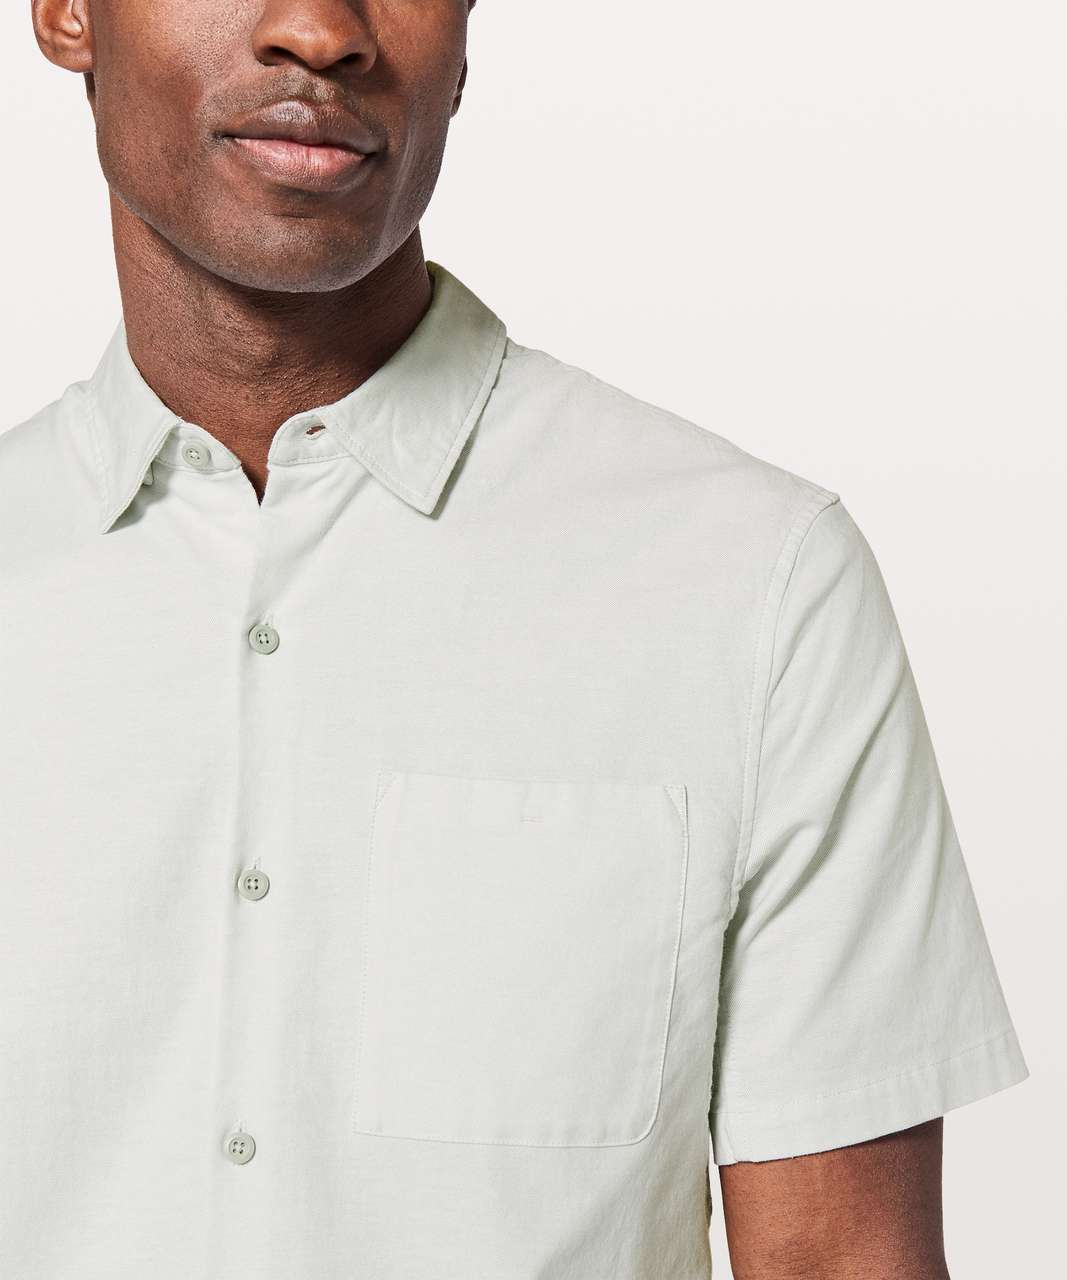 Lululemon All Town Short Sleeve Buttondown - Sea Salt / White